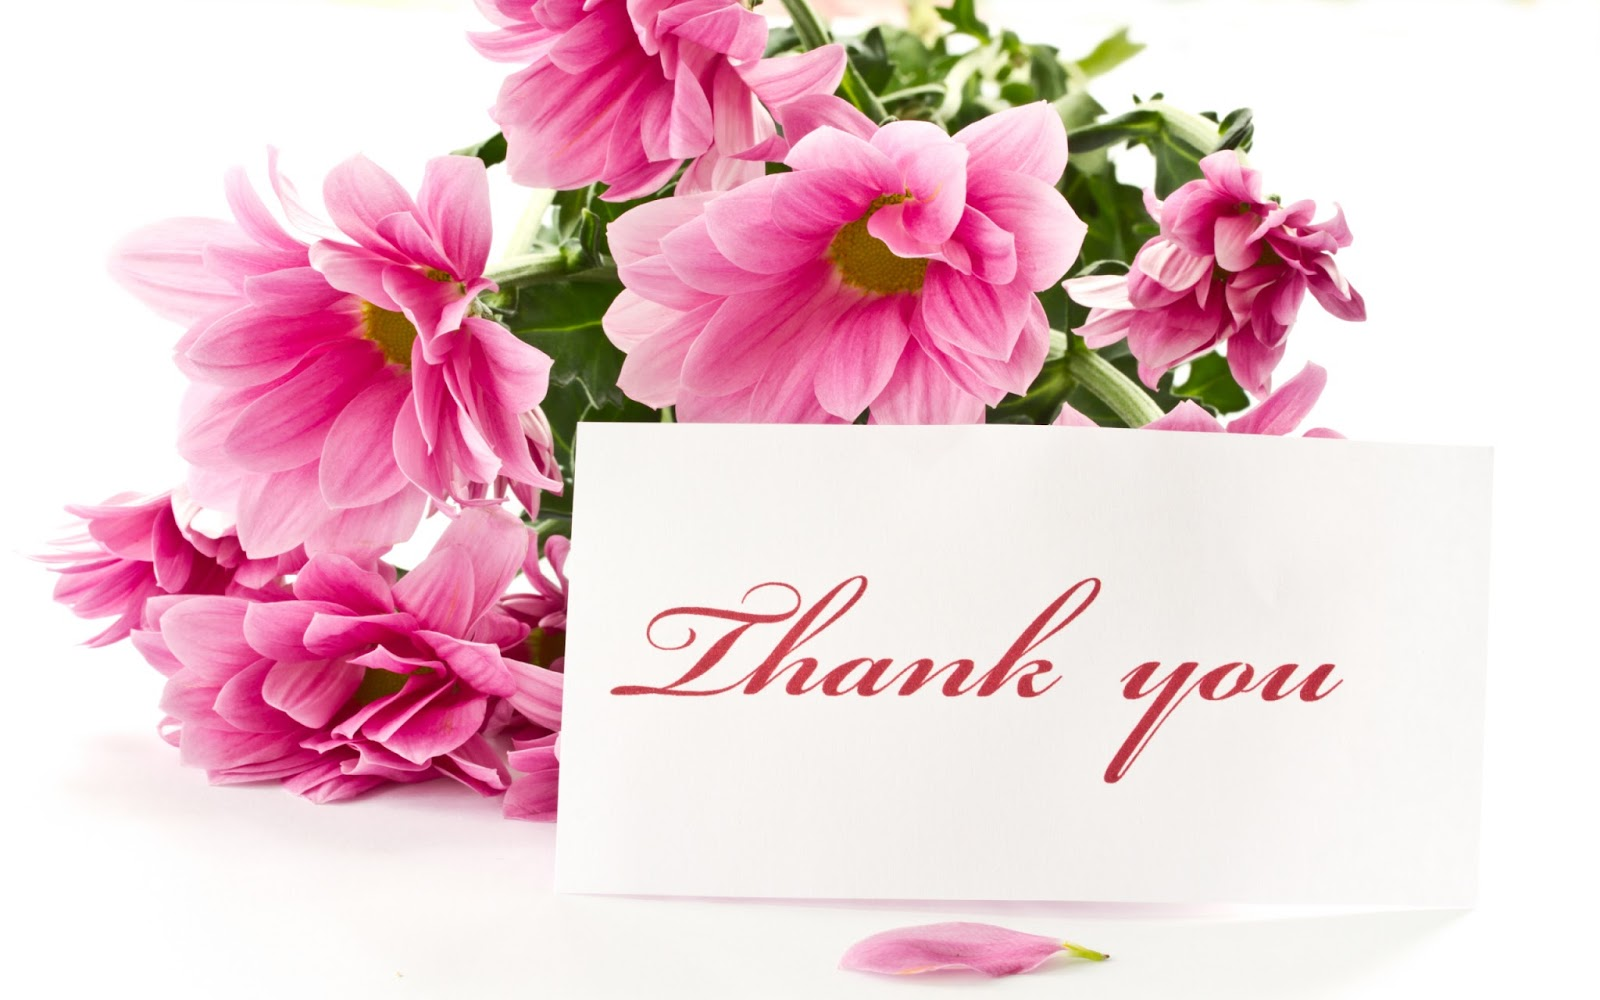 Thank You HD Images with Wishes